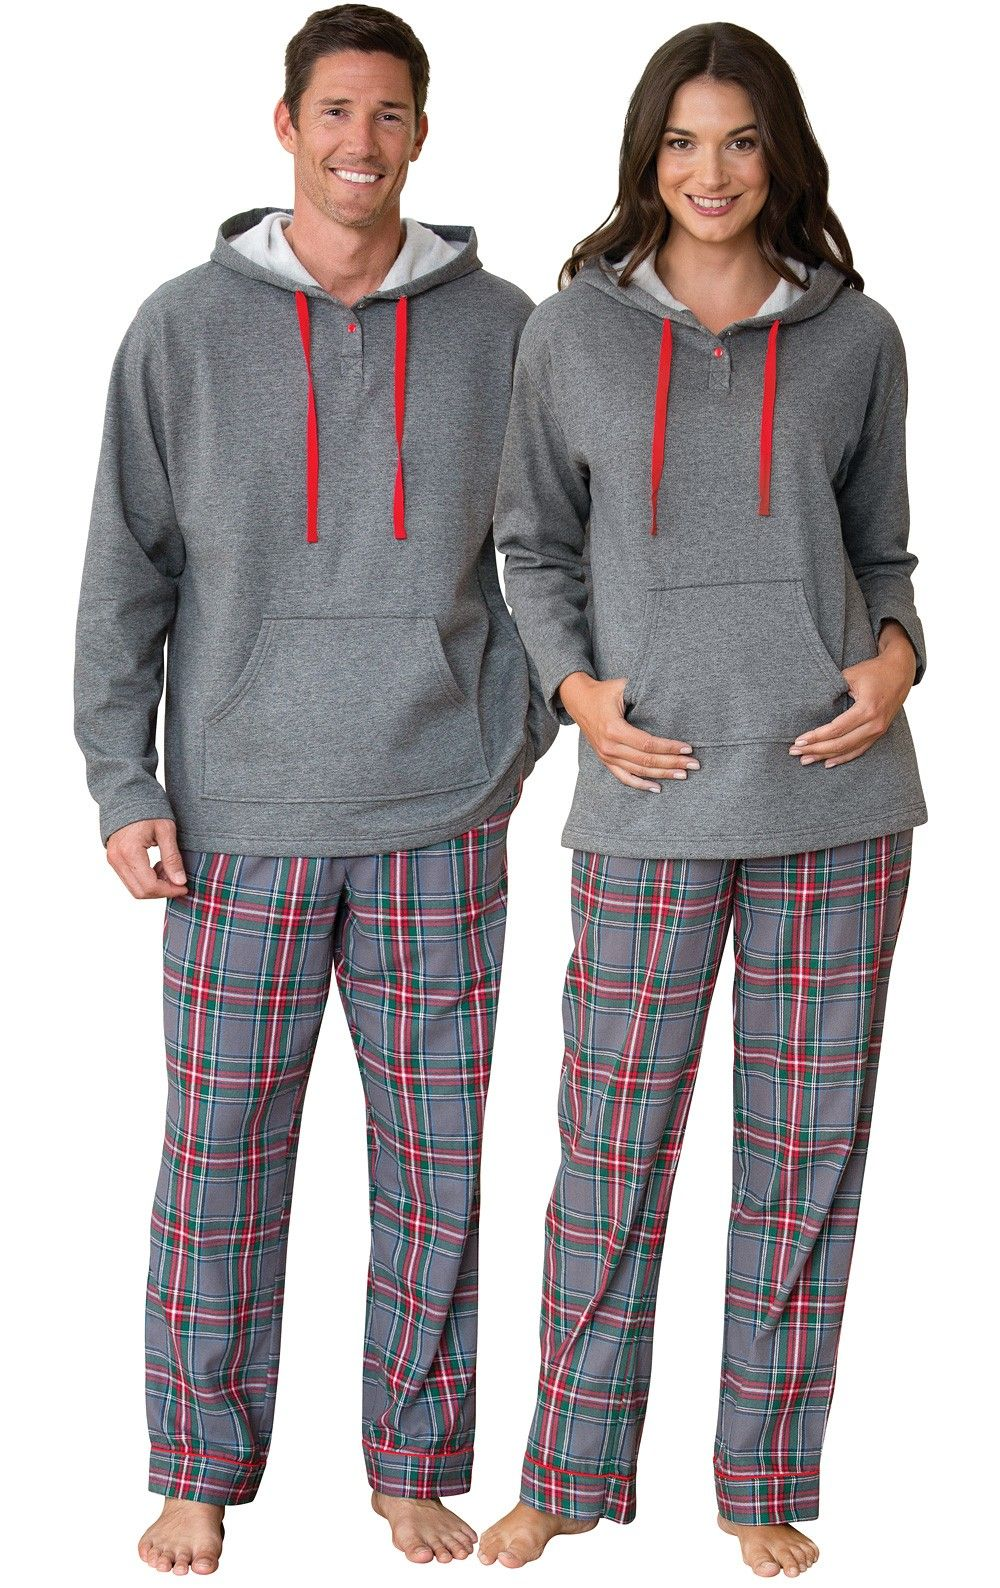 7d3a0f1d2f Gray Plaid Hooded His & Hers Matching Pajamas | His & Hers | Collections |  Matching Family Sets | Pajamagram